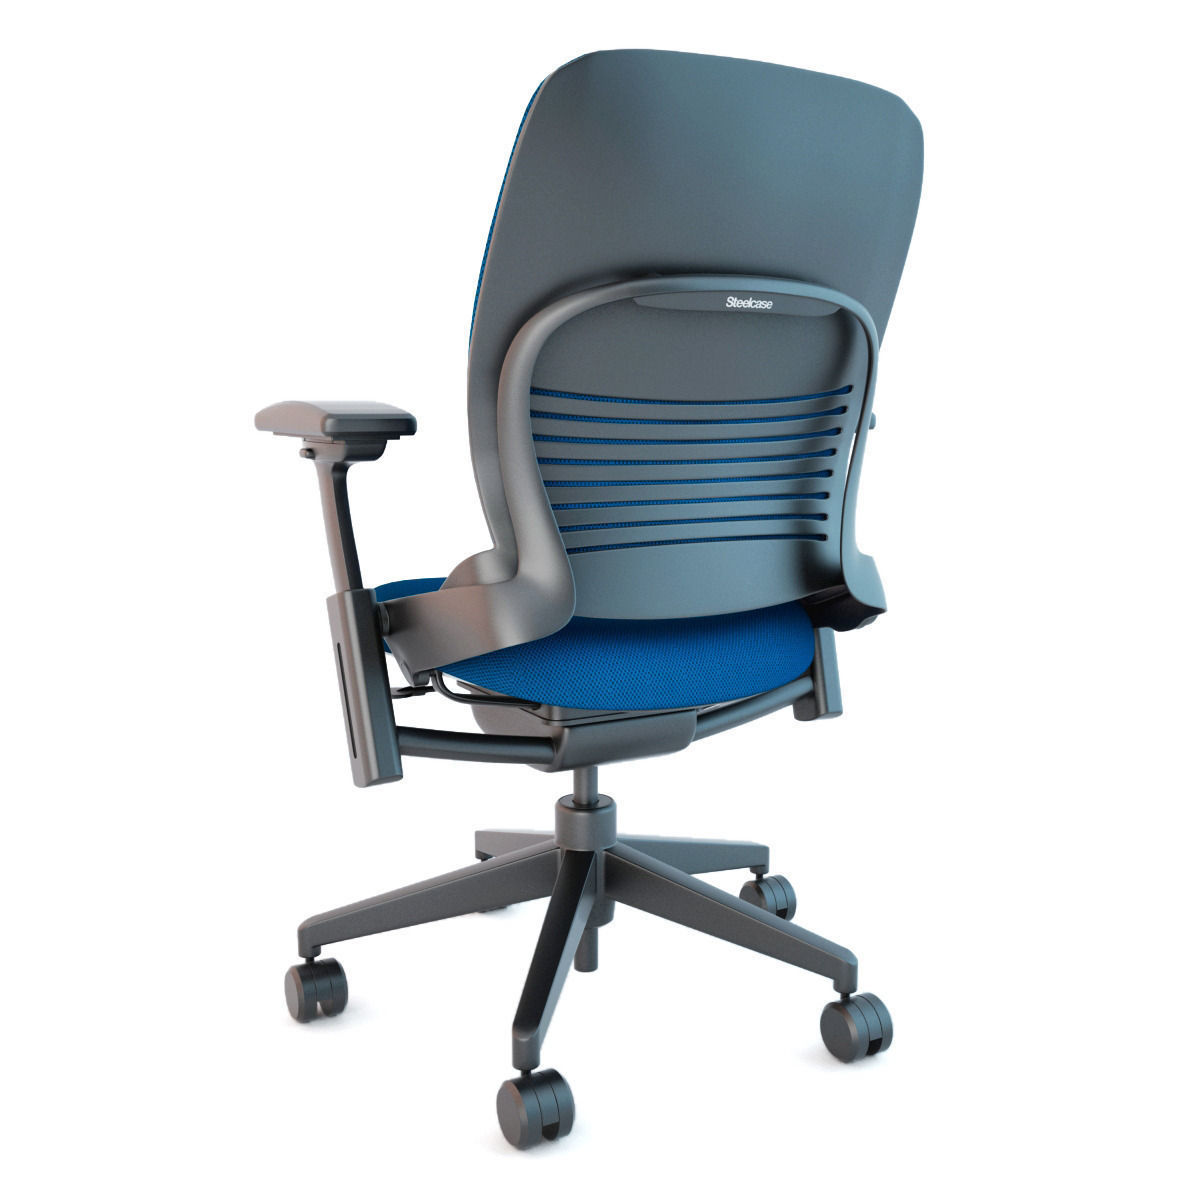 Steelcase Desk Chair Steelcase Leap Office Chair 3d Model Max Obj Fbx